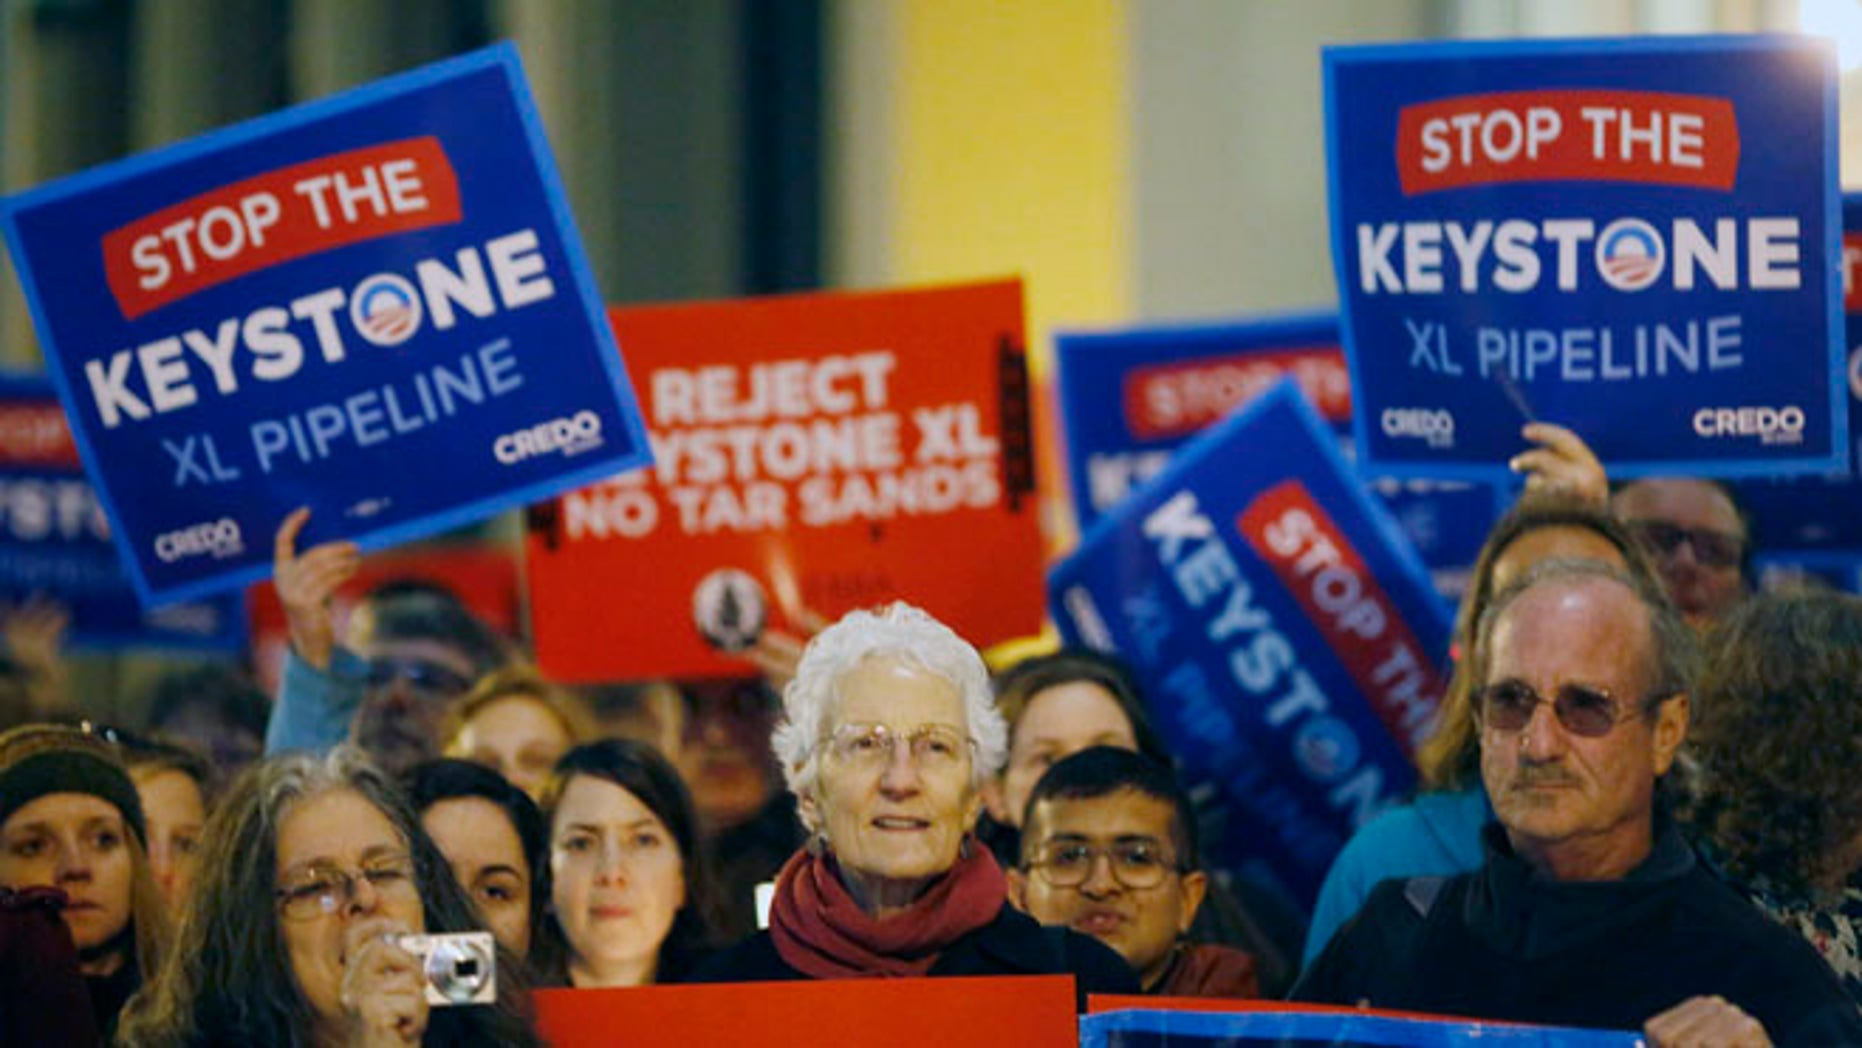 Feb 3, 2014: Demonstrators protest against the proposed Keystone XL oil pipeline in San Francisco, California. (Reuters)